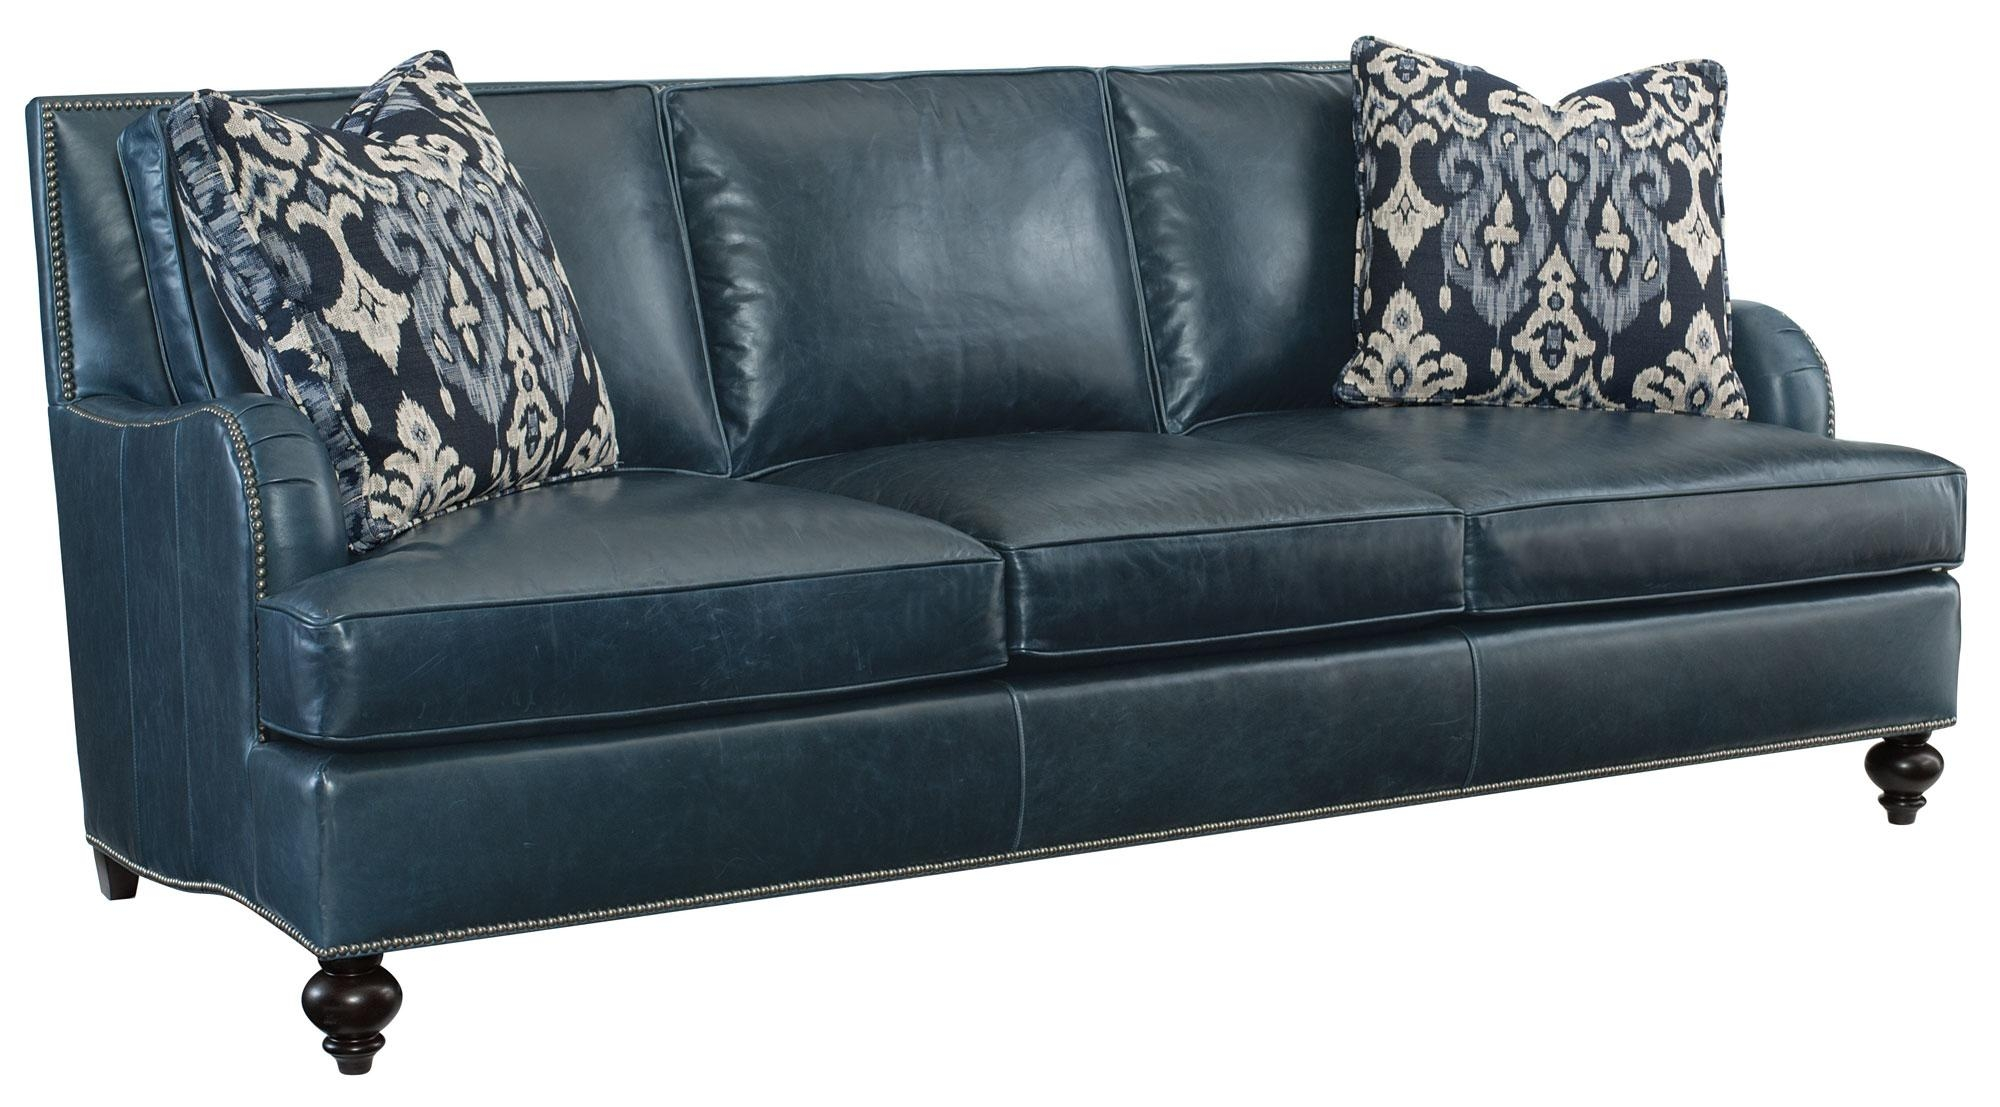 Bernhardt Leather Sofa | Winda 7 Furniture For Foster Leather Sofas (Image 8 of 20)